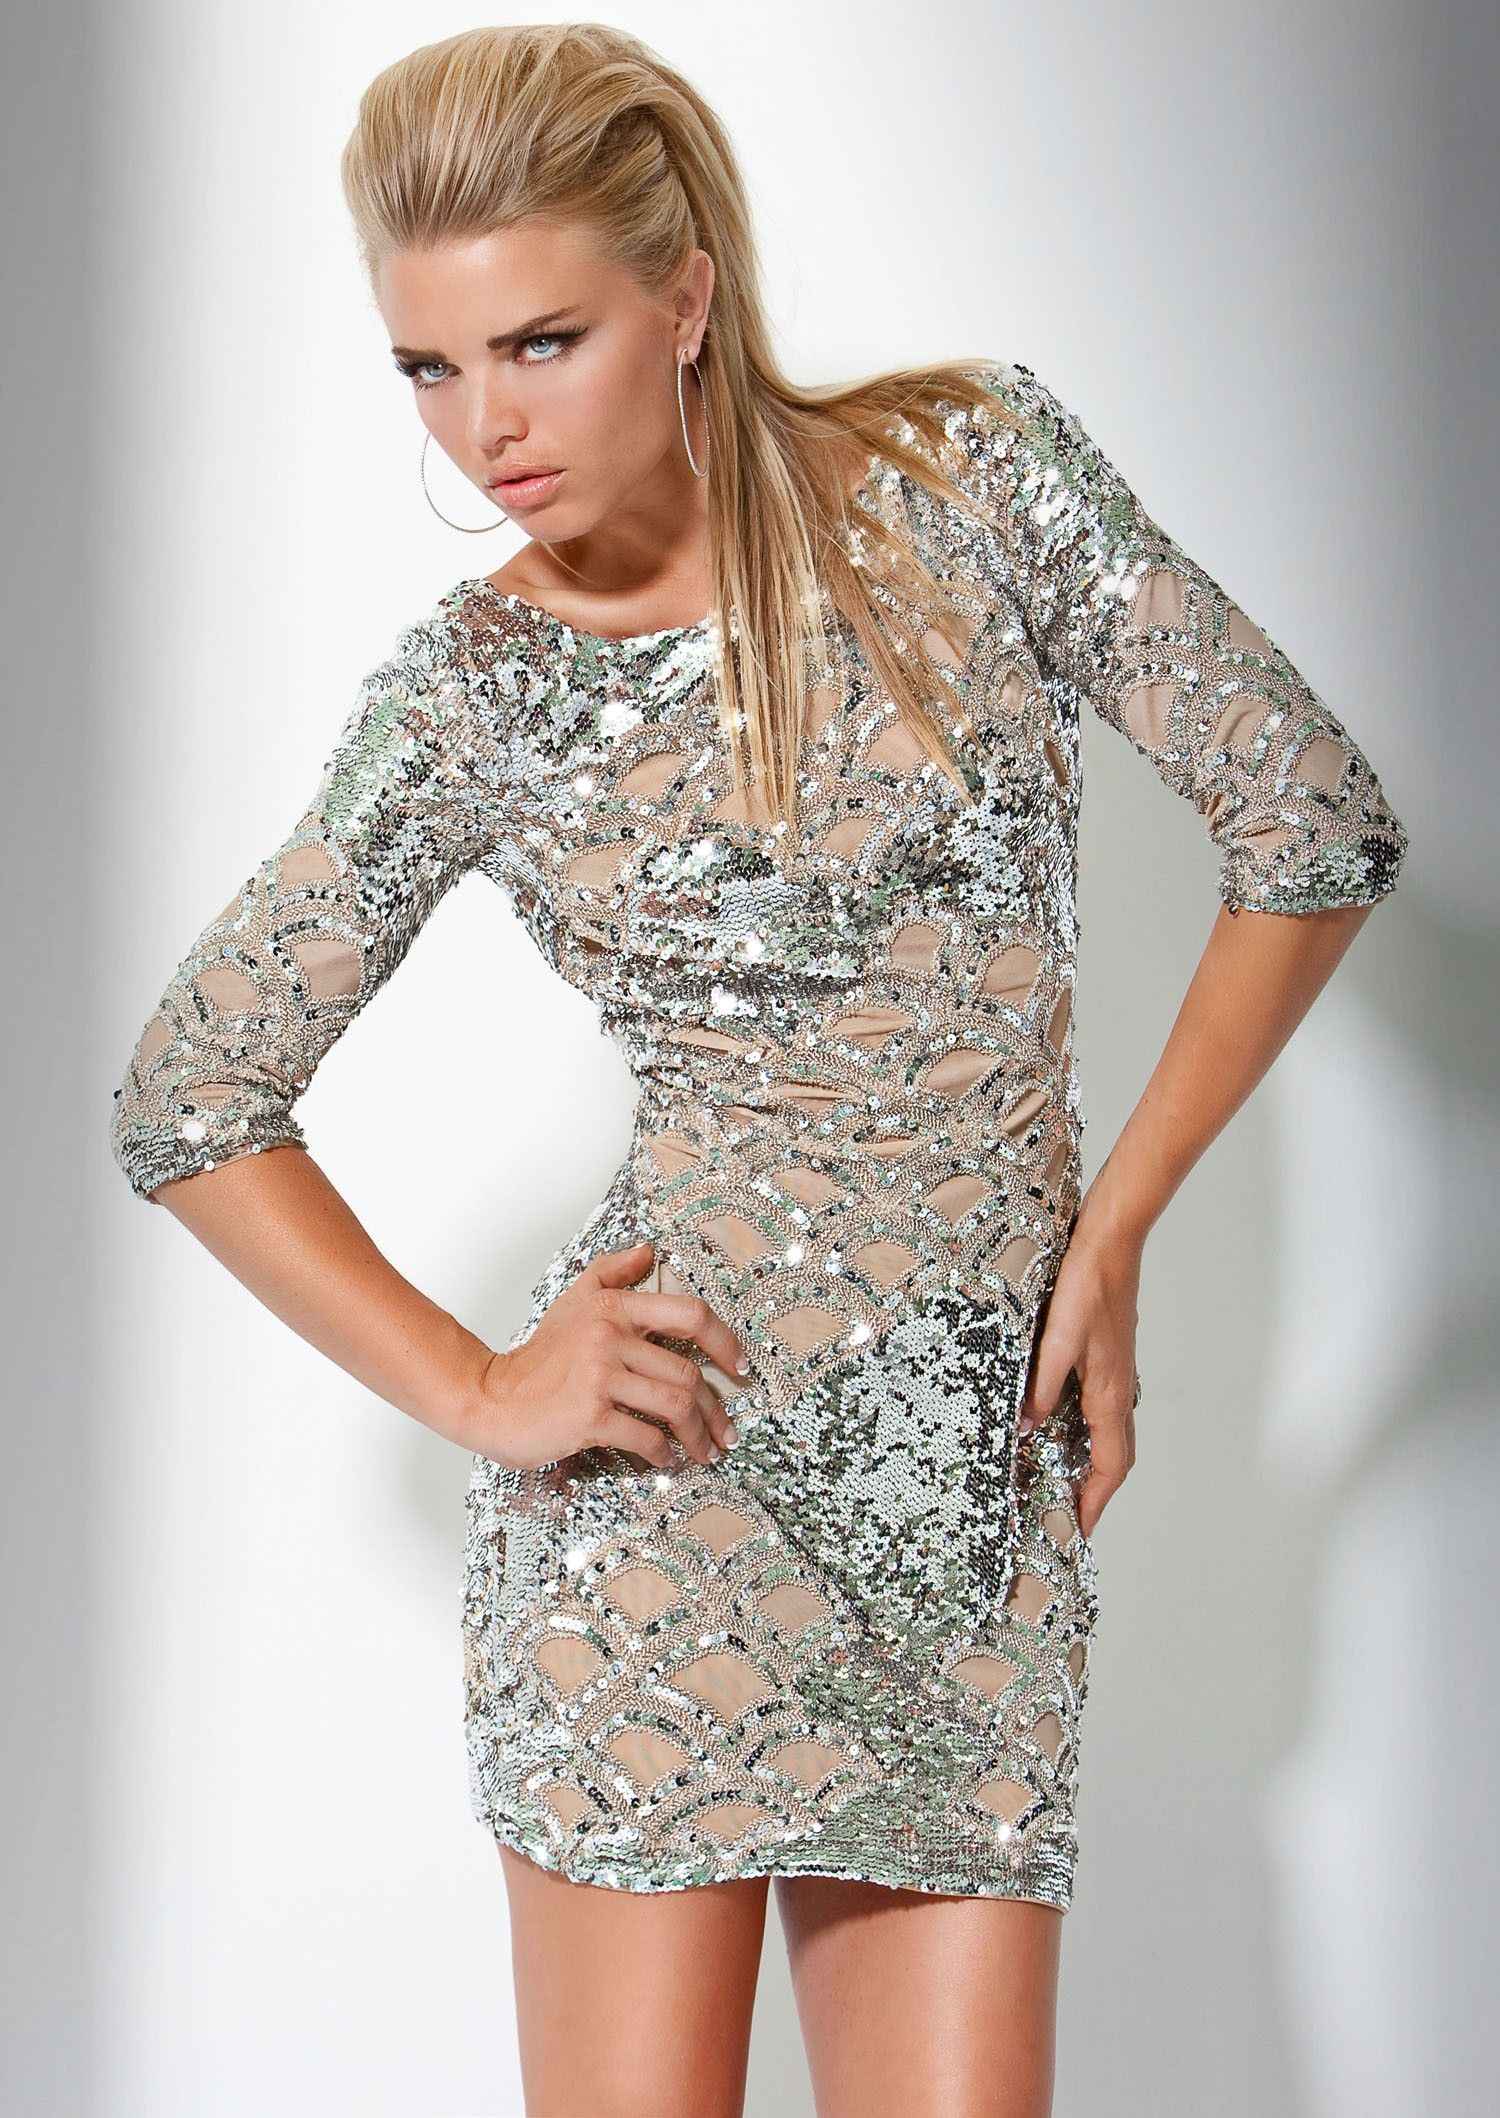 So obsessed with this dress! So perfect for New Years. (Jovani 7749)